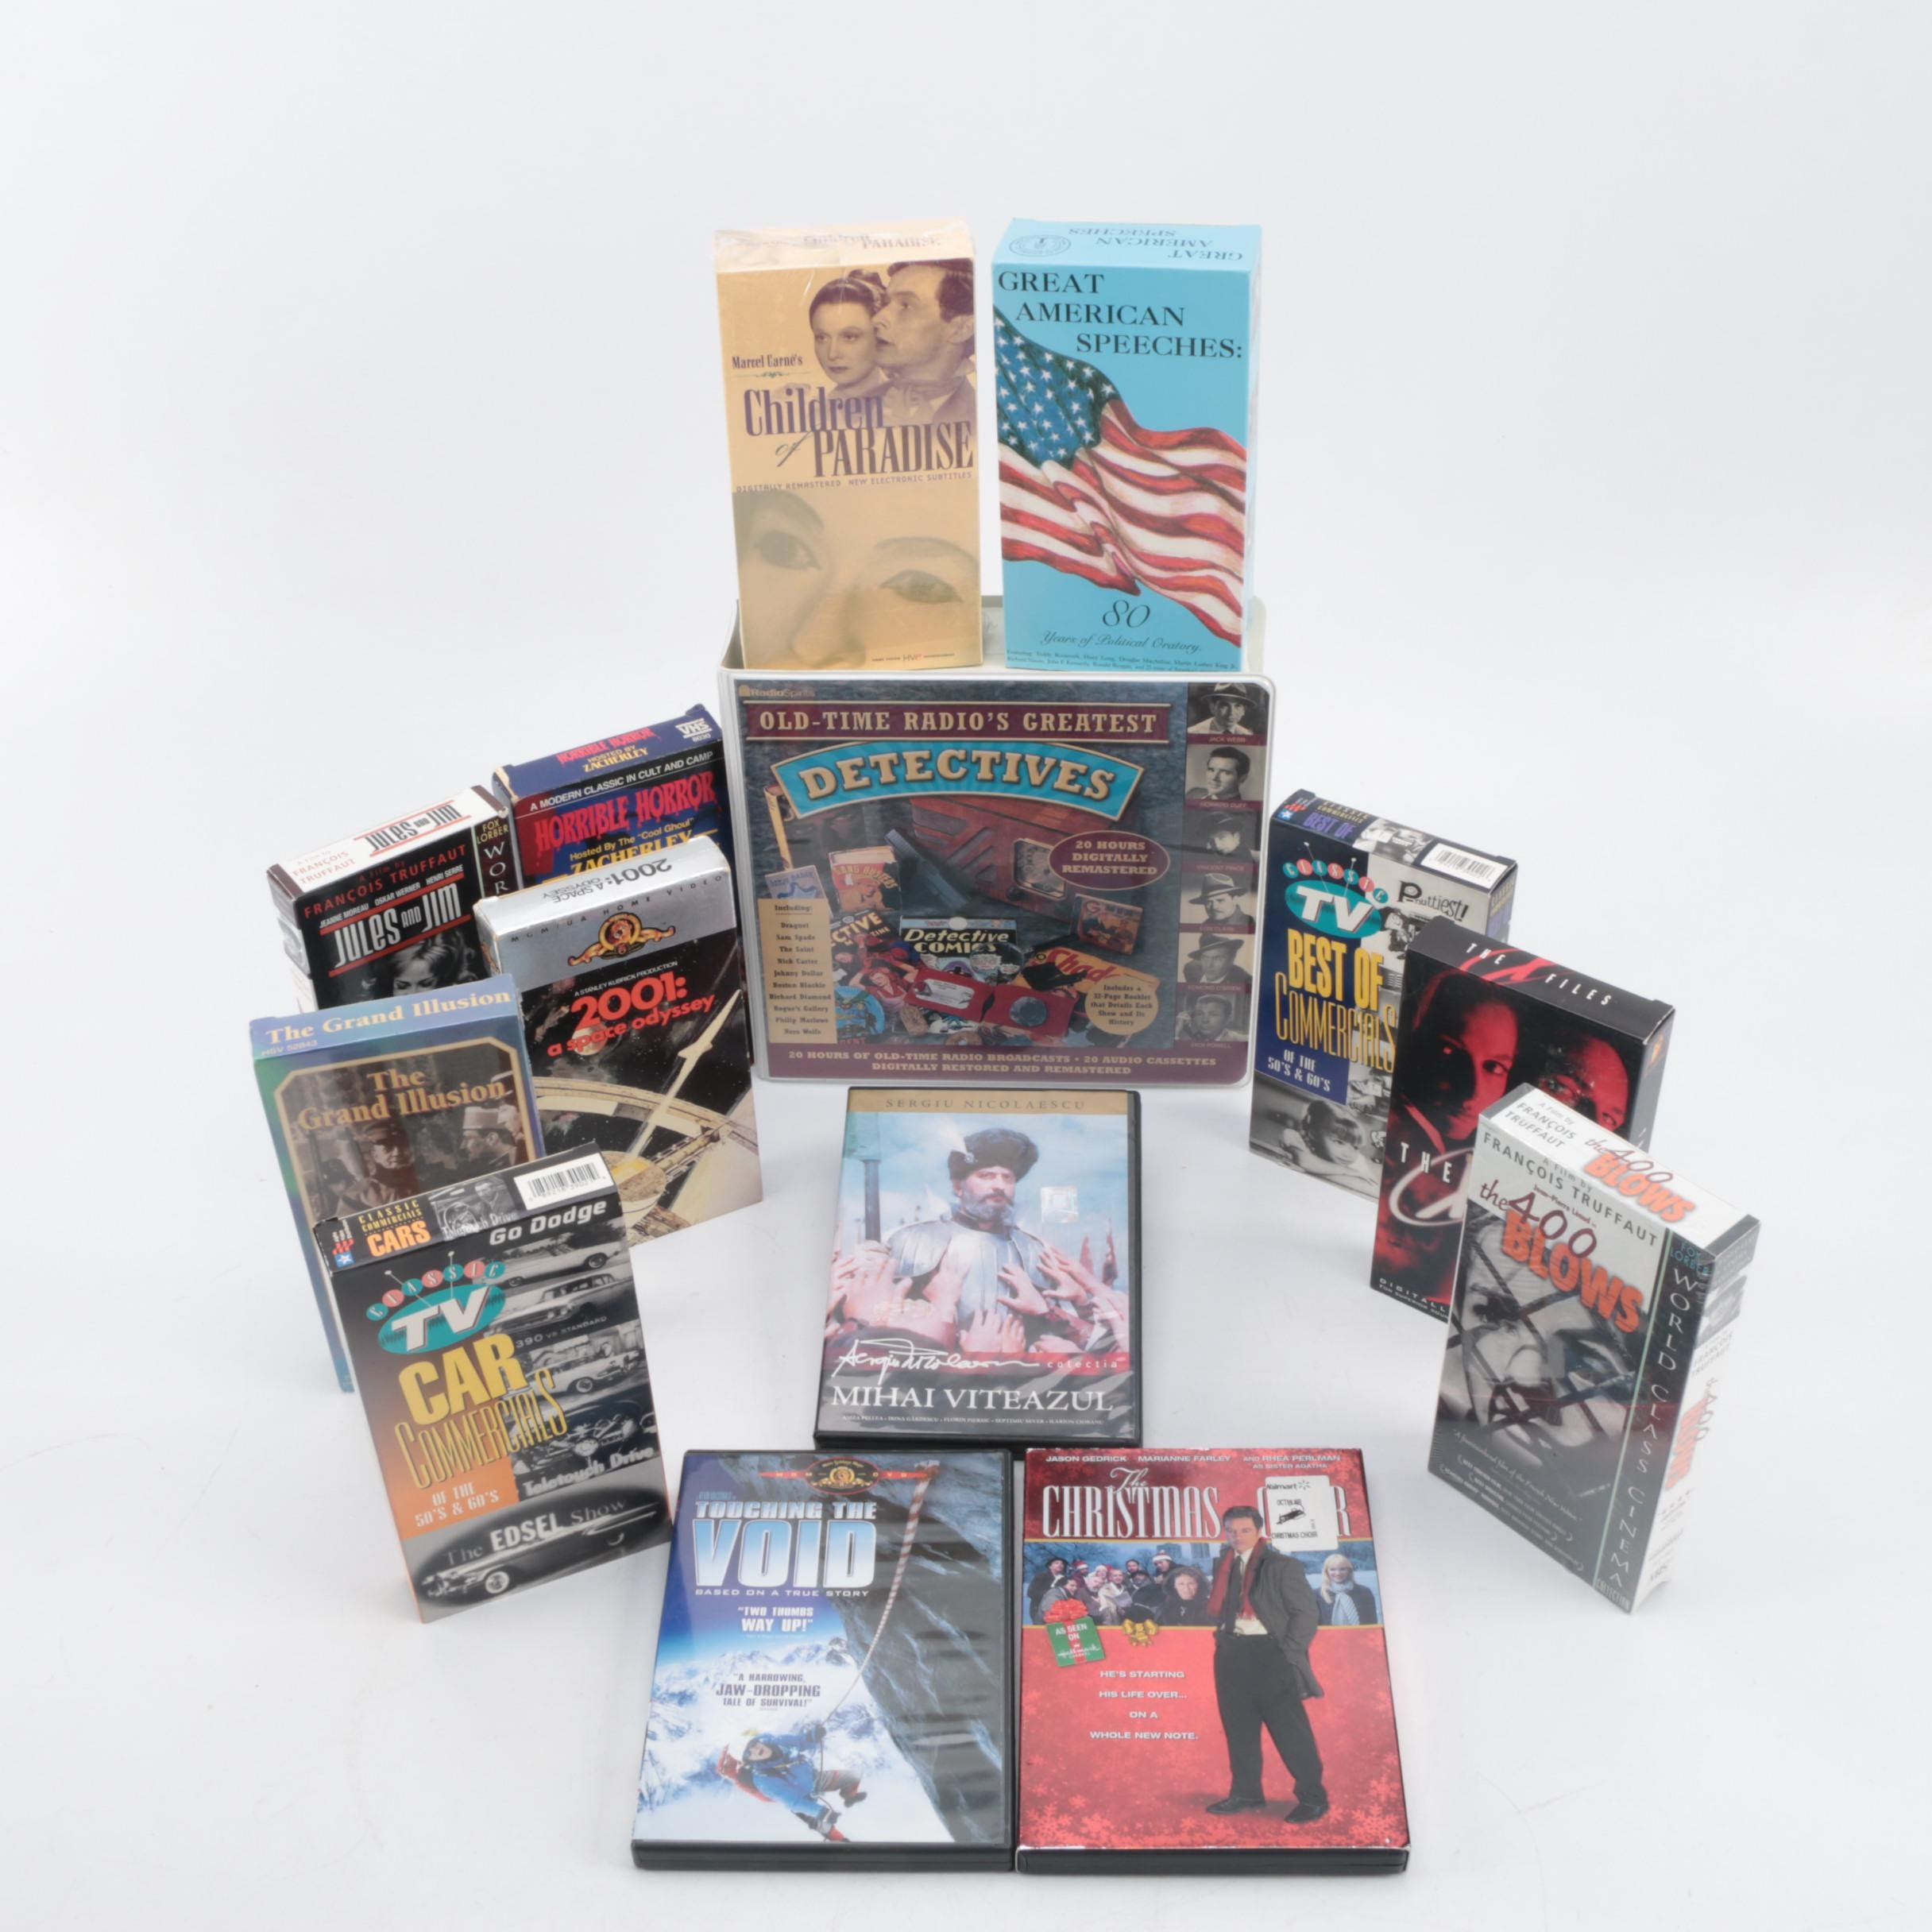 Historical, Sci-Fi and Other DVDs, VHS Tapes and Cassettes